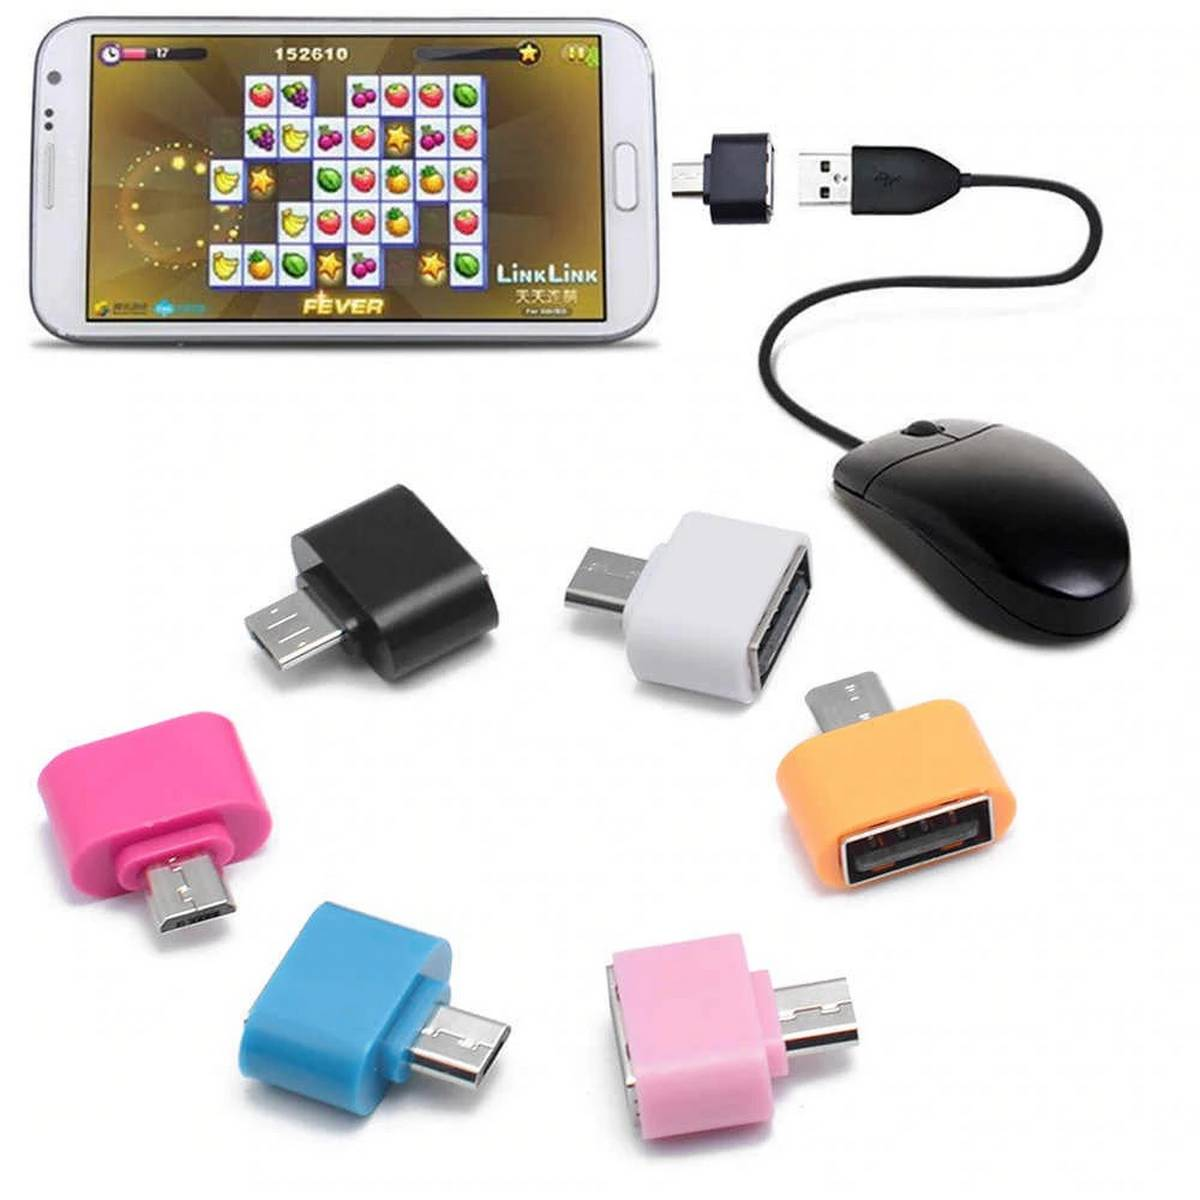 Top Selling Otg Usb Flash Drive for Smartphone and Tablets - Multi colors